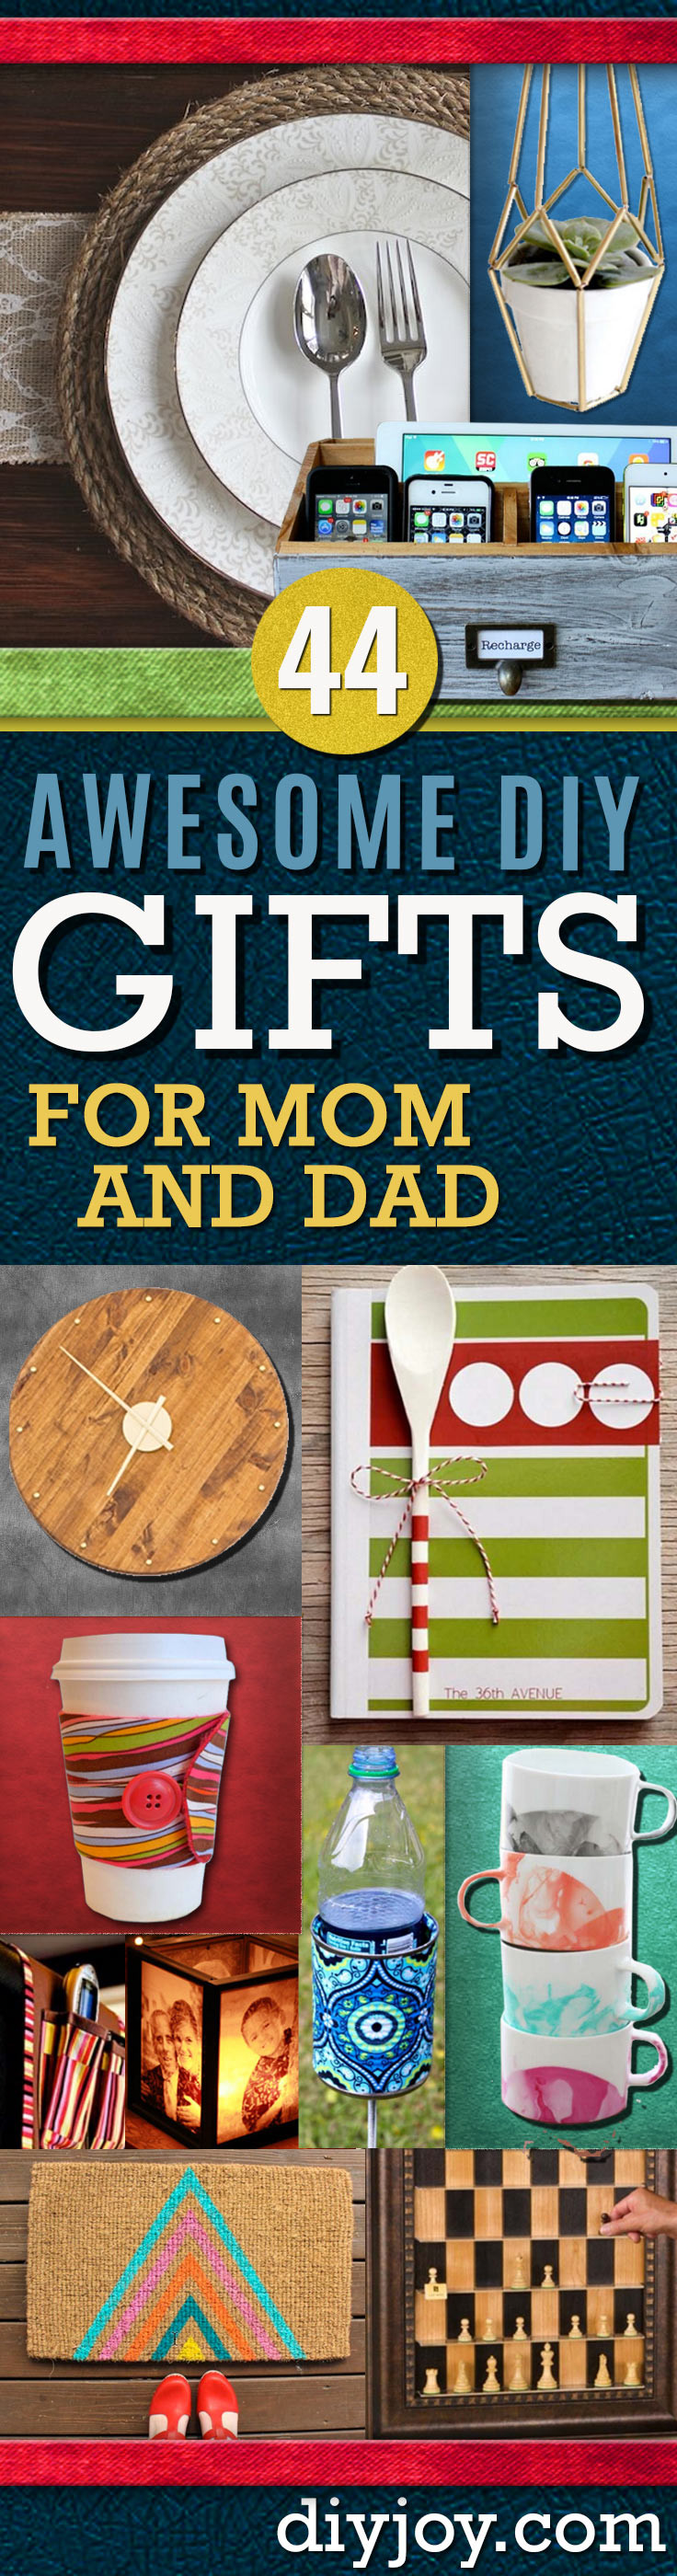 Best ideas about Homemade Gift Ideas For Daddy . Save or Pin Awesome DIY Gift Ideas Mom and Dad Will Love Now.